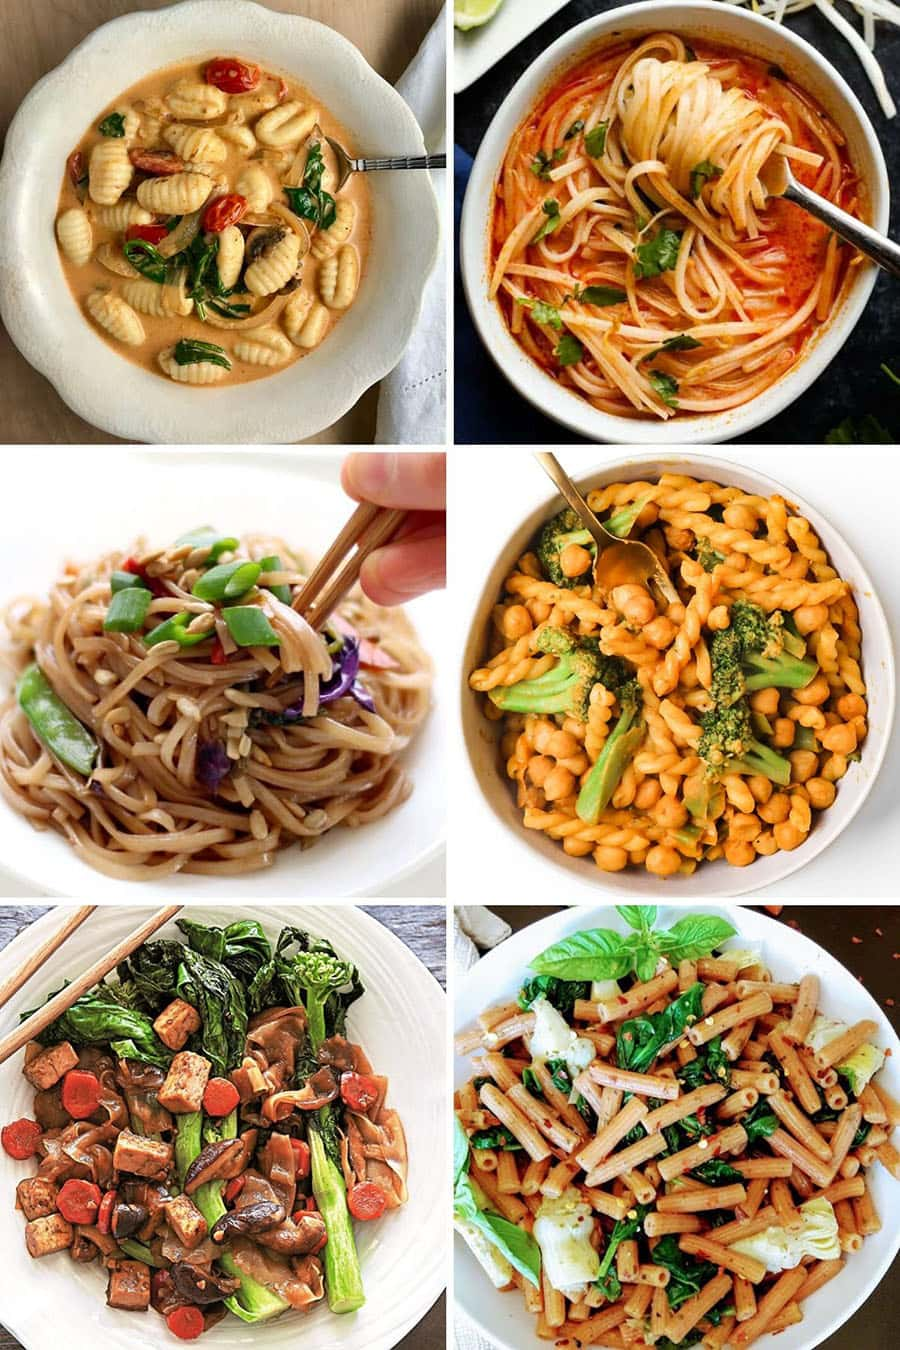 Collage of 6 vegan Asian pasta sauce recipes: coconut curry, pad thai, pad see eew, tahini chickpea, red lentil, and more